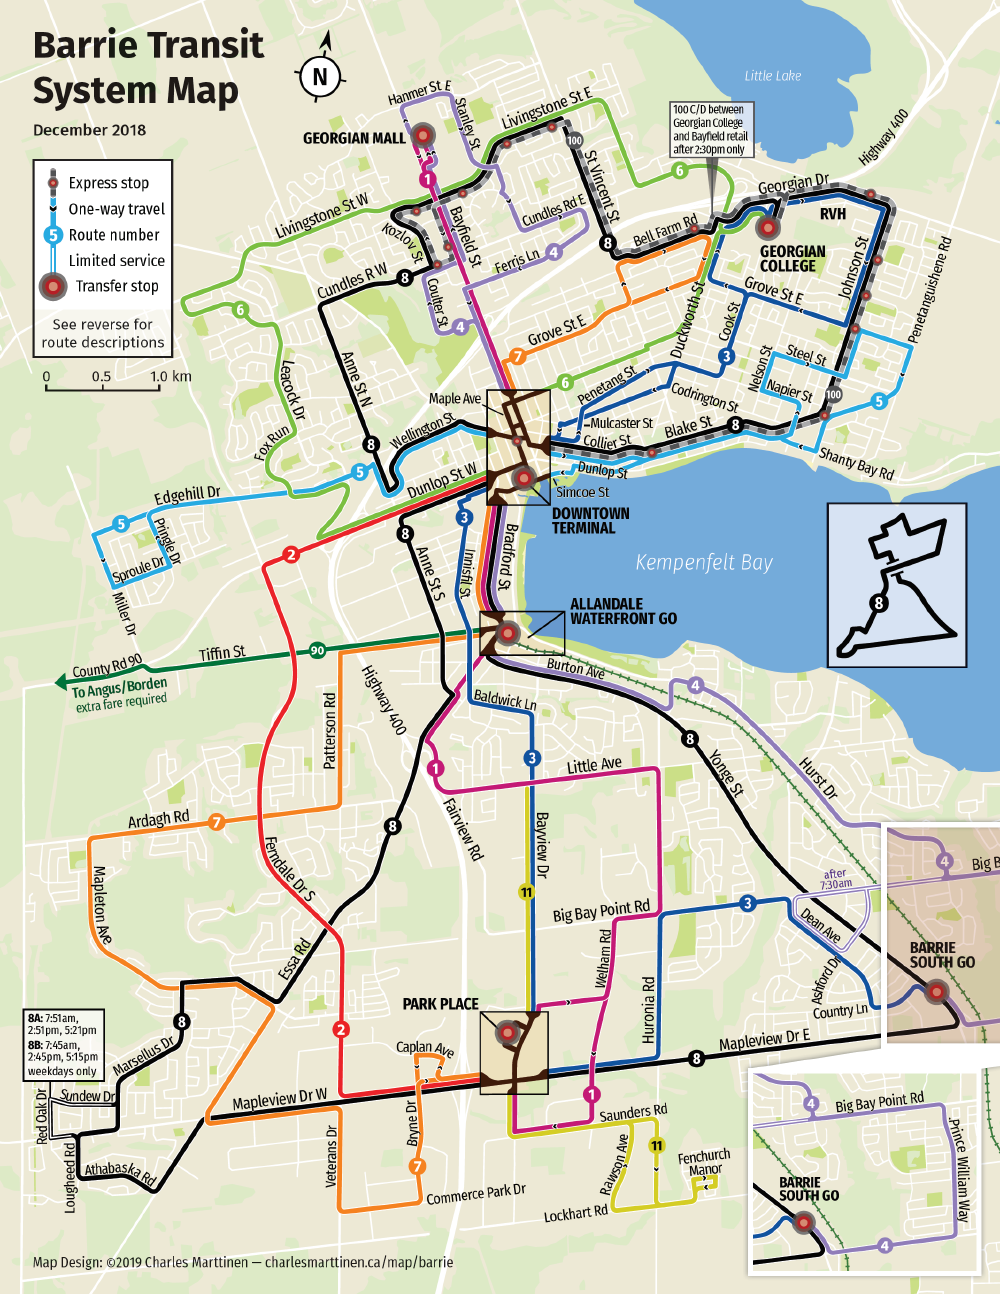 Re-drawn Barrie Transit map